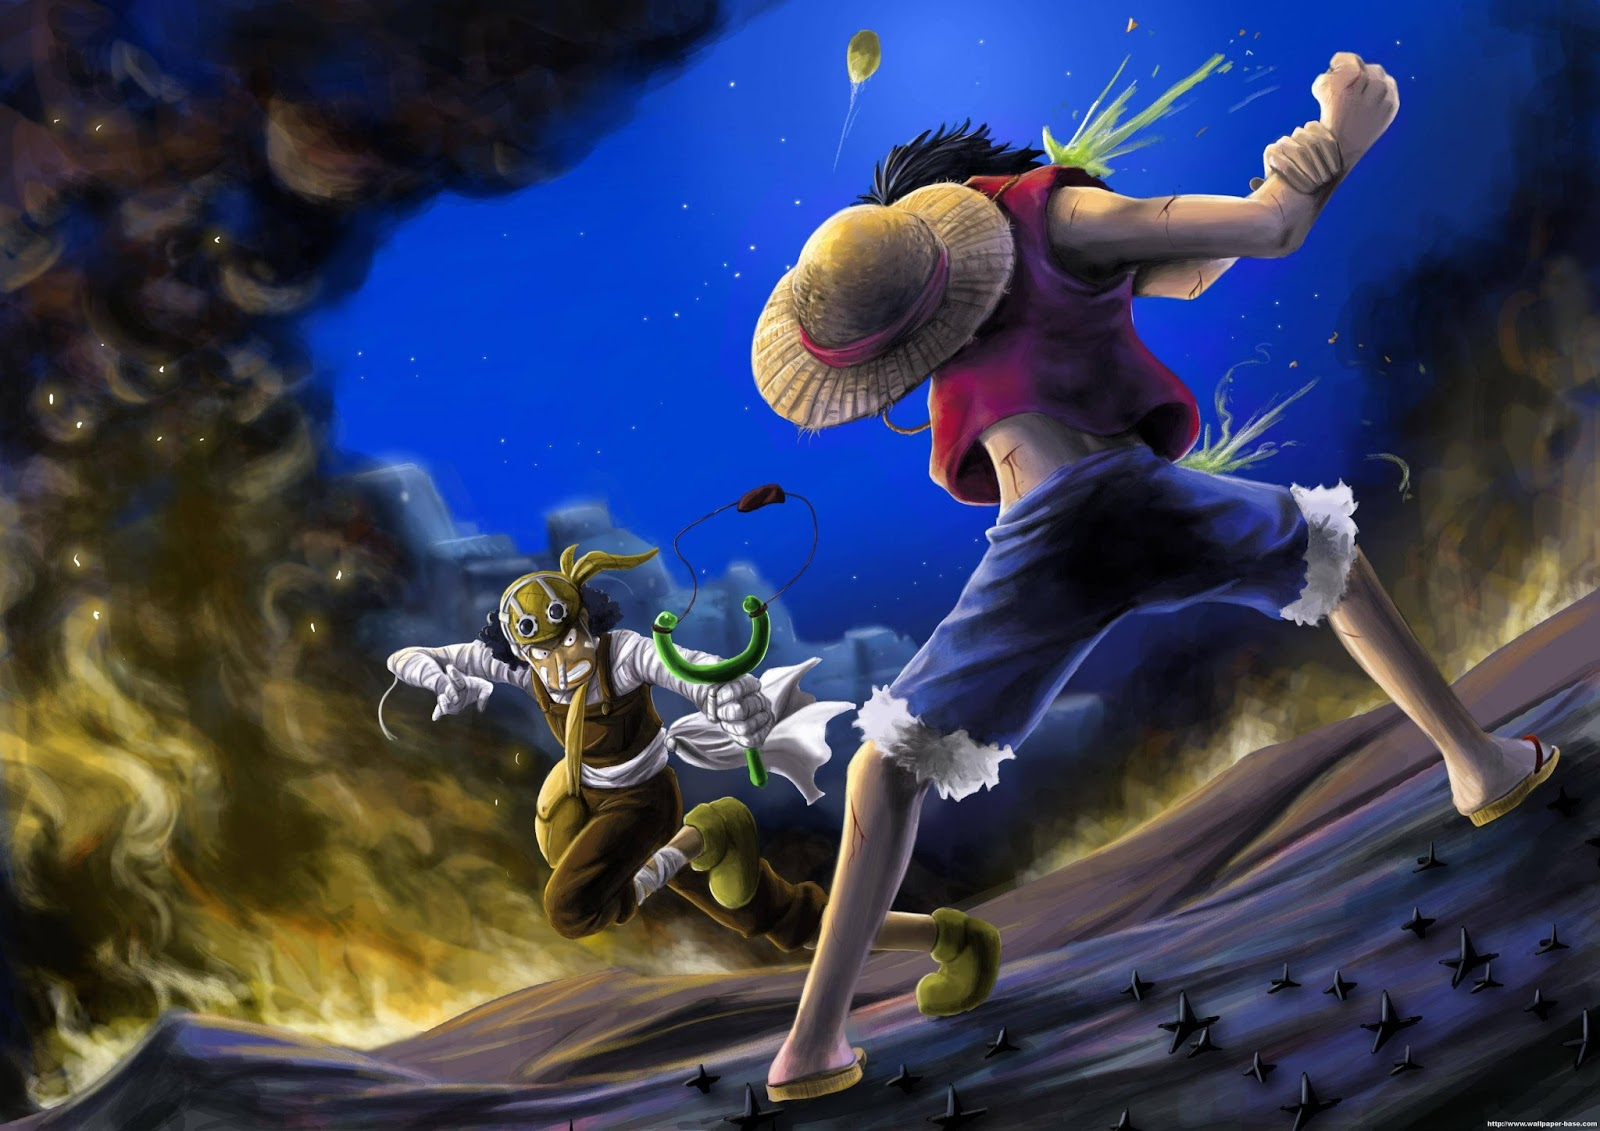 40 Hd One Piece Wallpapers 1920x1080 2020 We 7